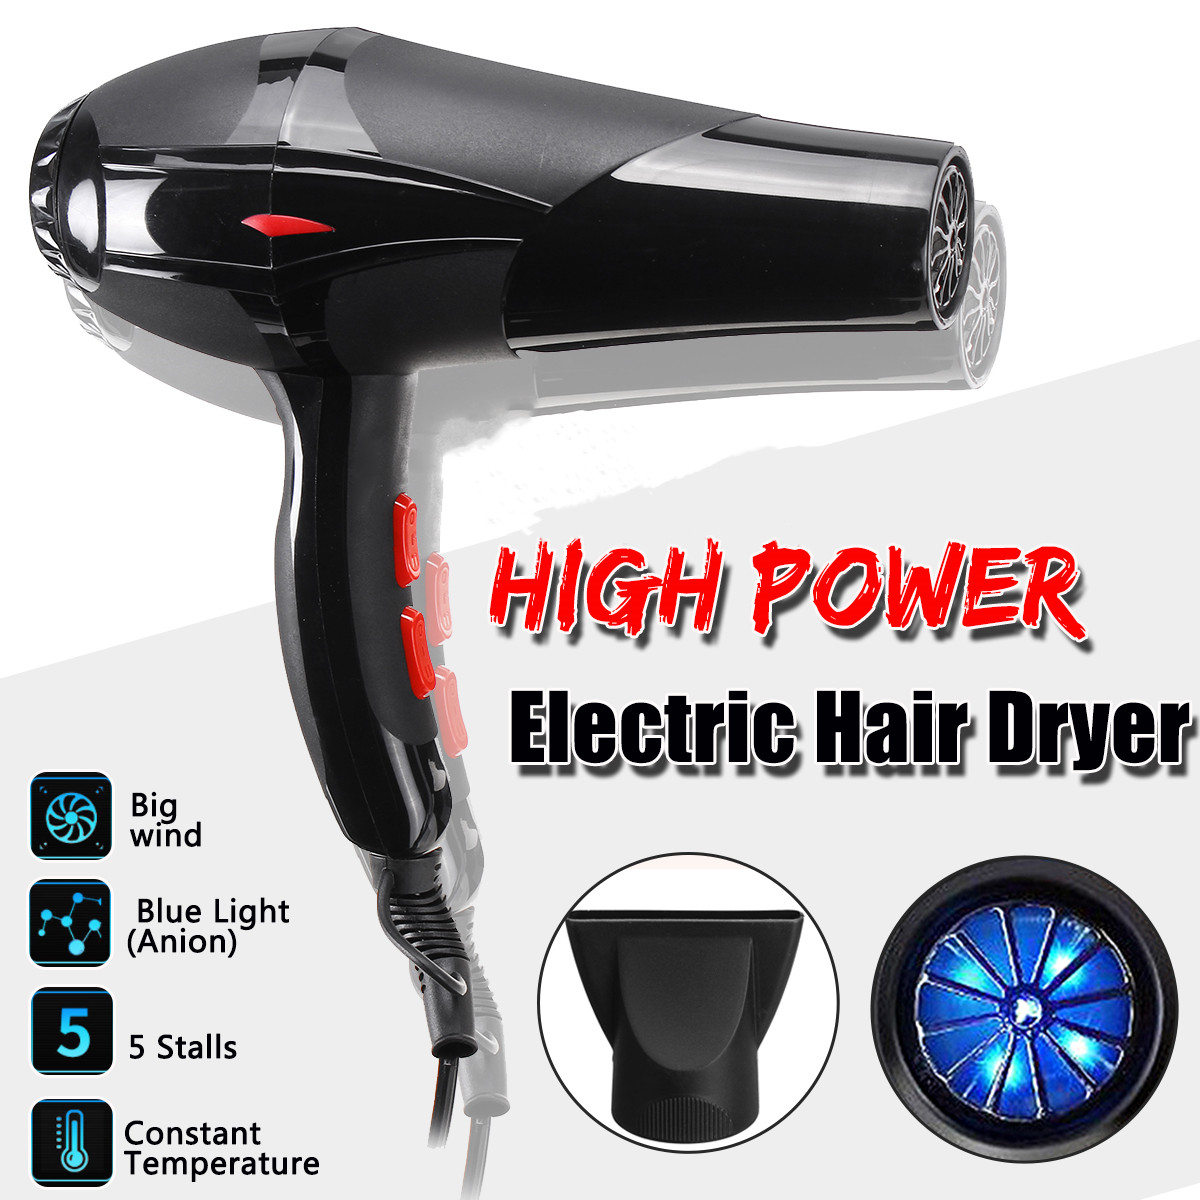 New Becornce 800W Powerful Hair Dryer For Anion Hairdressing Barber Salon Tool Blow Dryer Low Hairdryer Hair Dryer Fan 220V